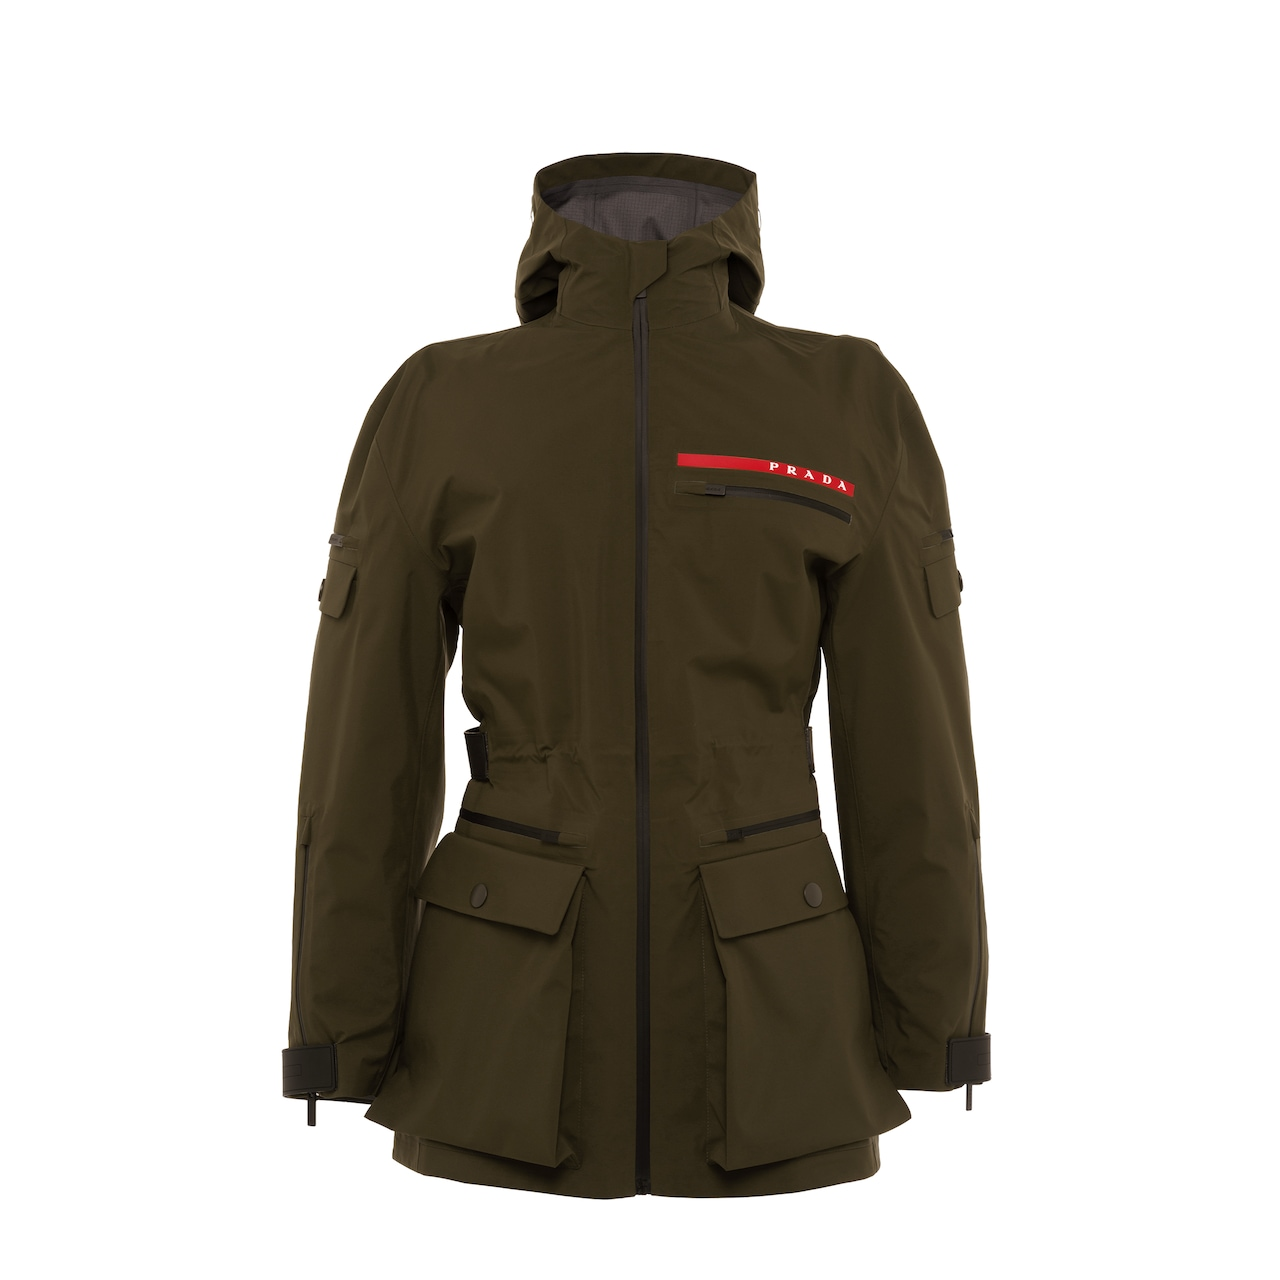 Prada LR-MX18 technical GORE-TEX PRO nylon fabric caban jacket 1